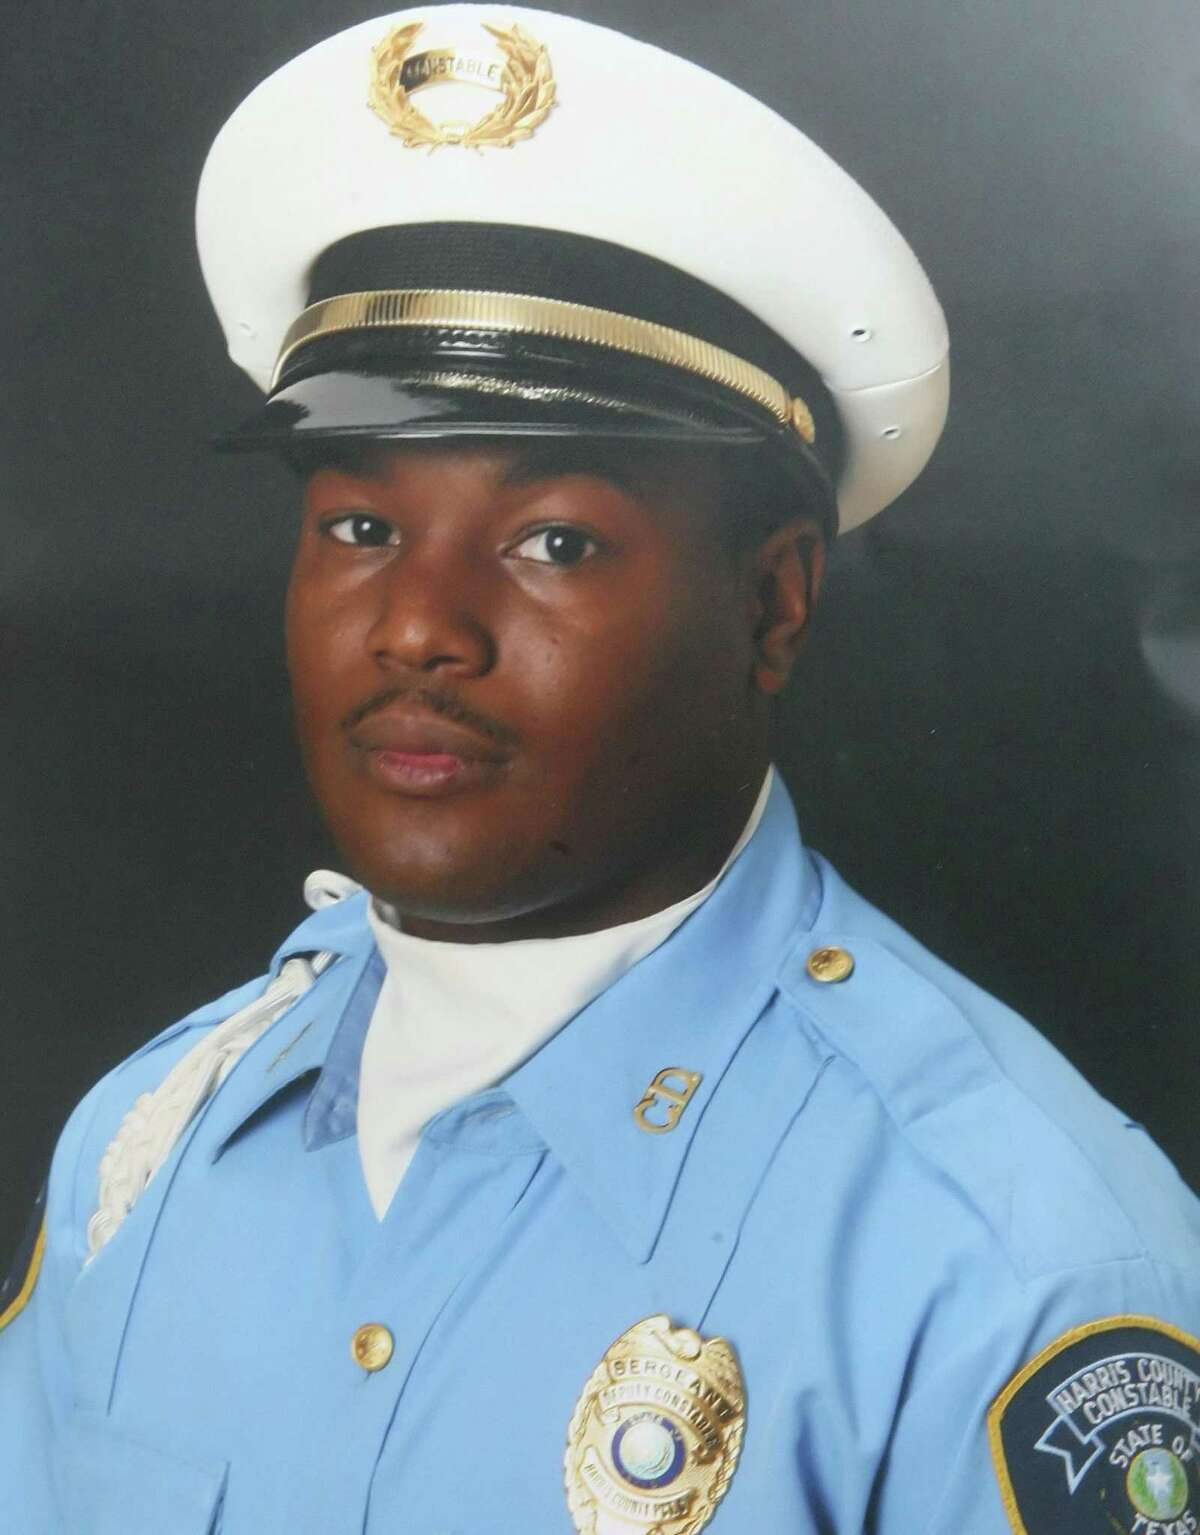 Precinct 6 Reserve Deputy Constable Carltrell Lewayne Odom was slain while off duty in 2007 during a robbery.